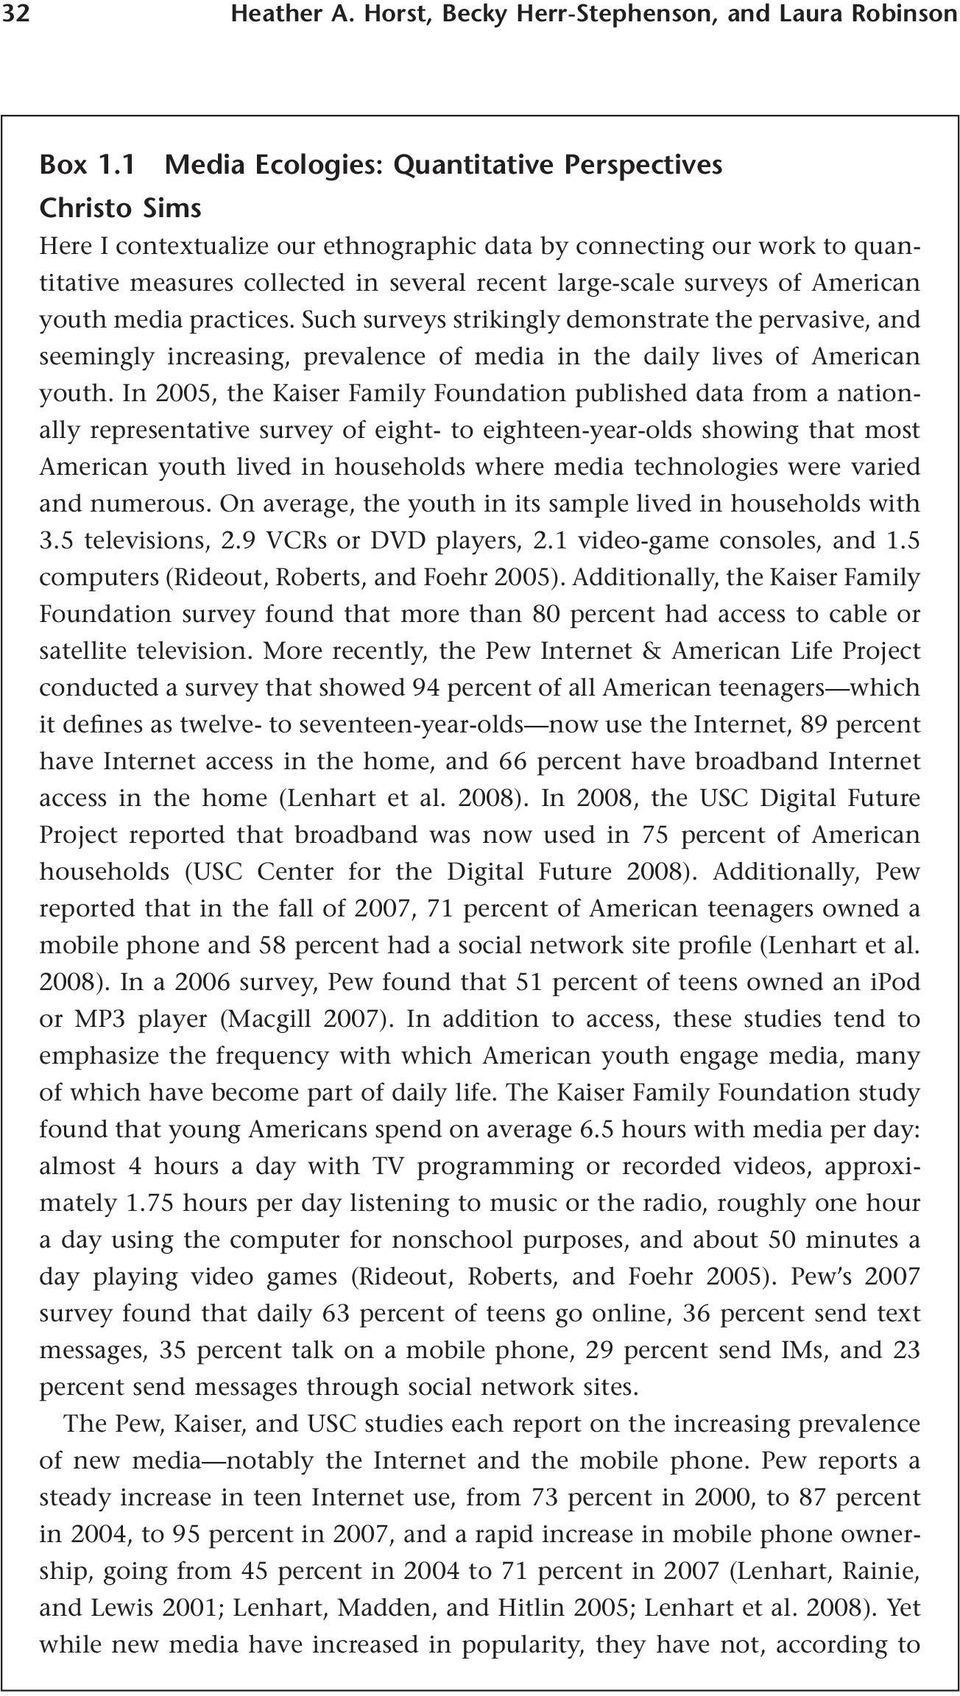 American youth media practices. Such surveys strikingly demonstrate the pervasive, and seemingly increasing, prevalence of media in the daily lives of American youth.